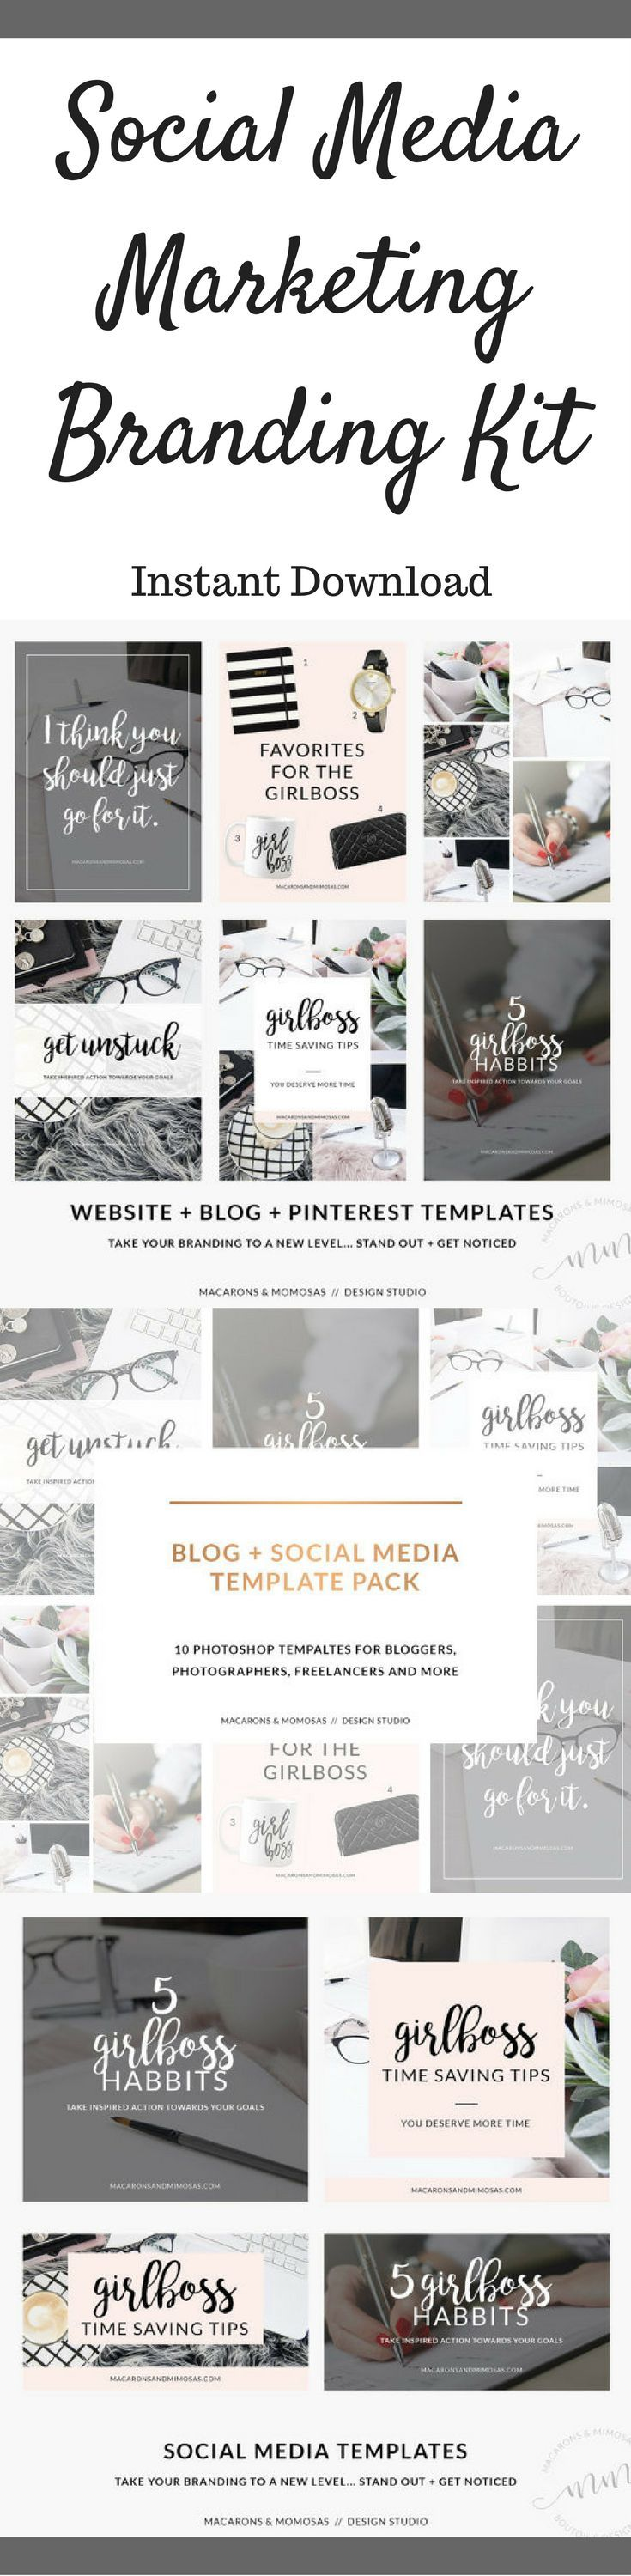 Social media marketing branding kit with 10 photoshop templates included. #ad #blogging #socialmedia #socialmediamarketing #branding #photoshop